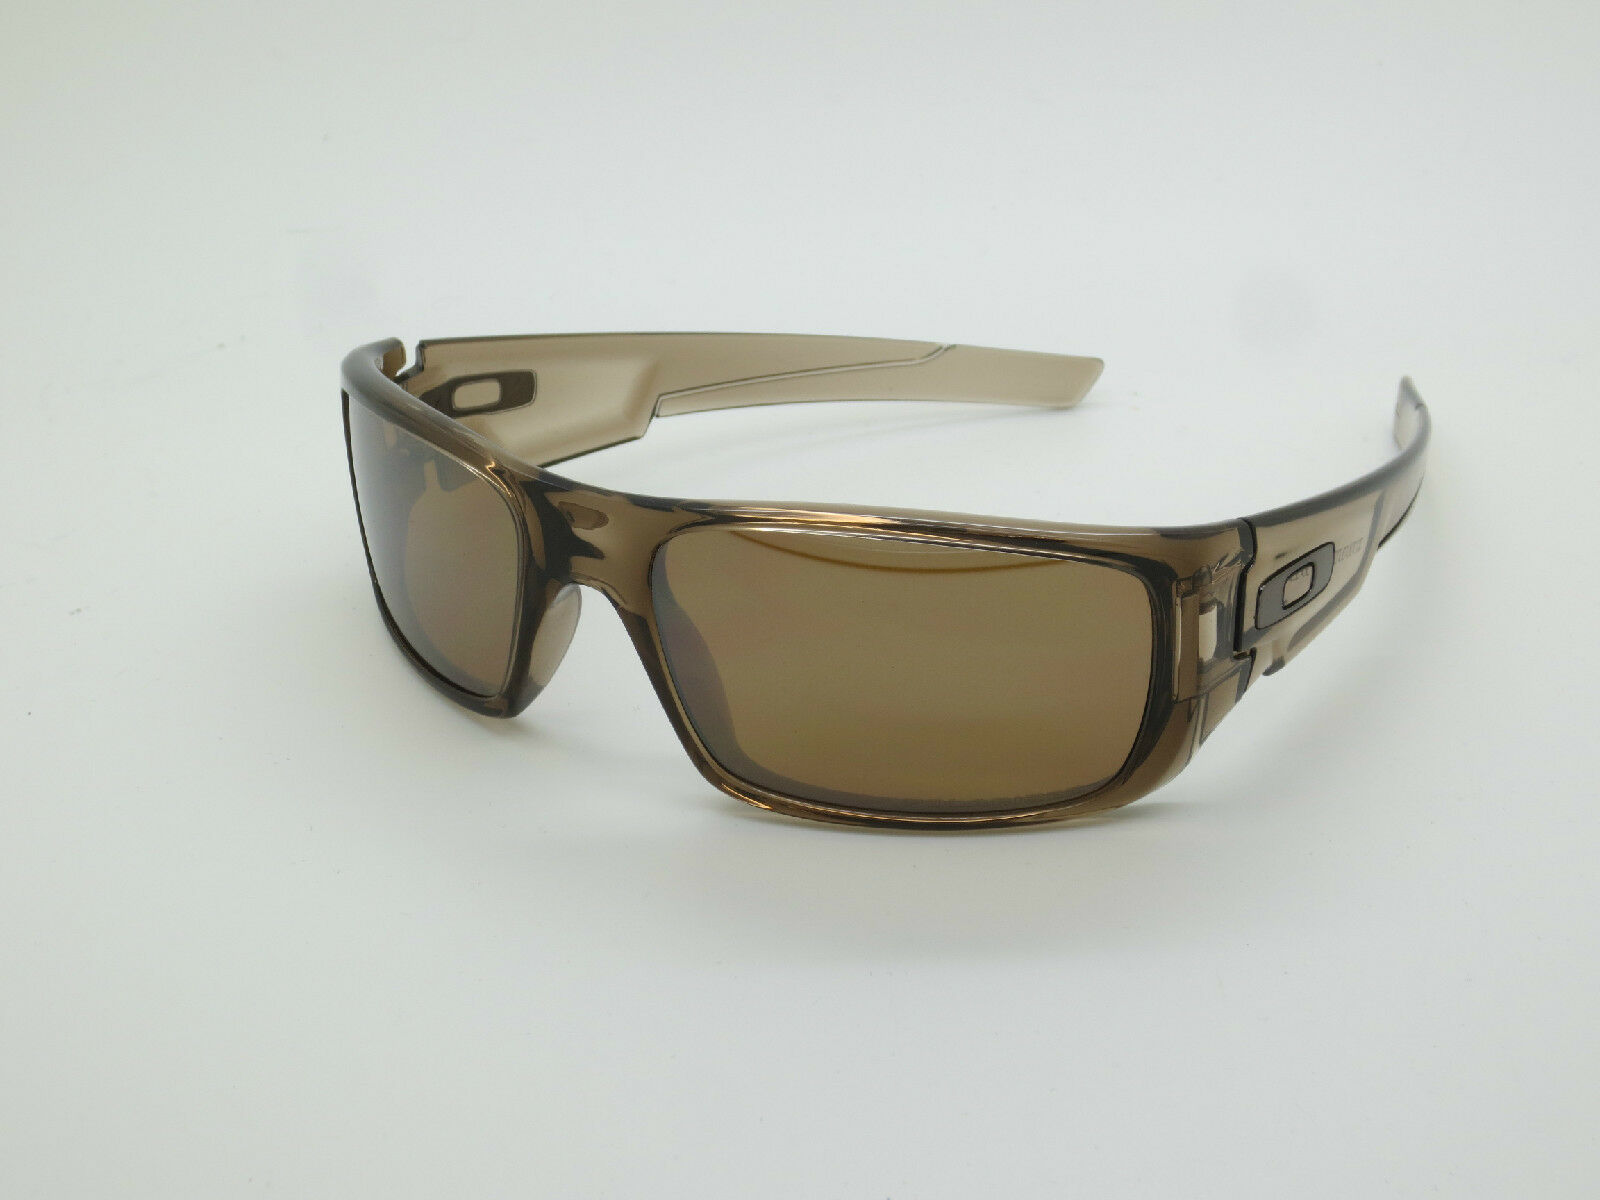 67c7ab5746 UPC 888392013026 product image for Oakley Silver F Matte Olive Ink Fire  Iridium Polarized Mens Sunglasses ...